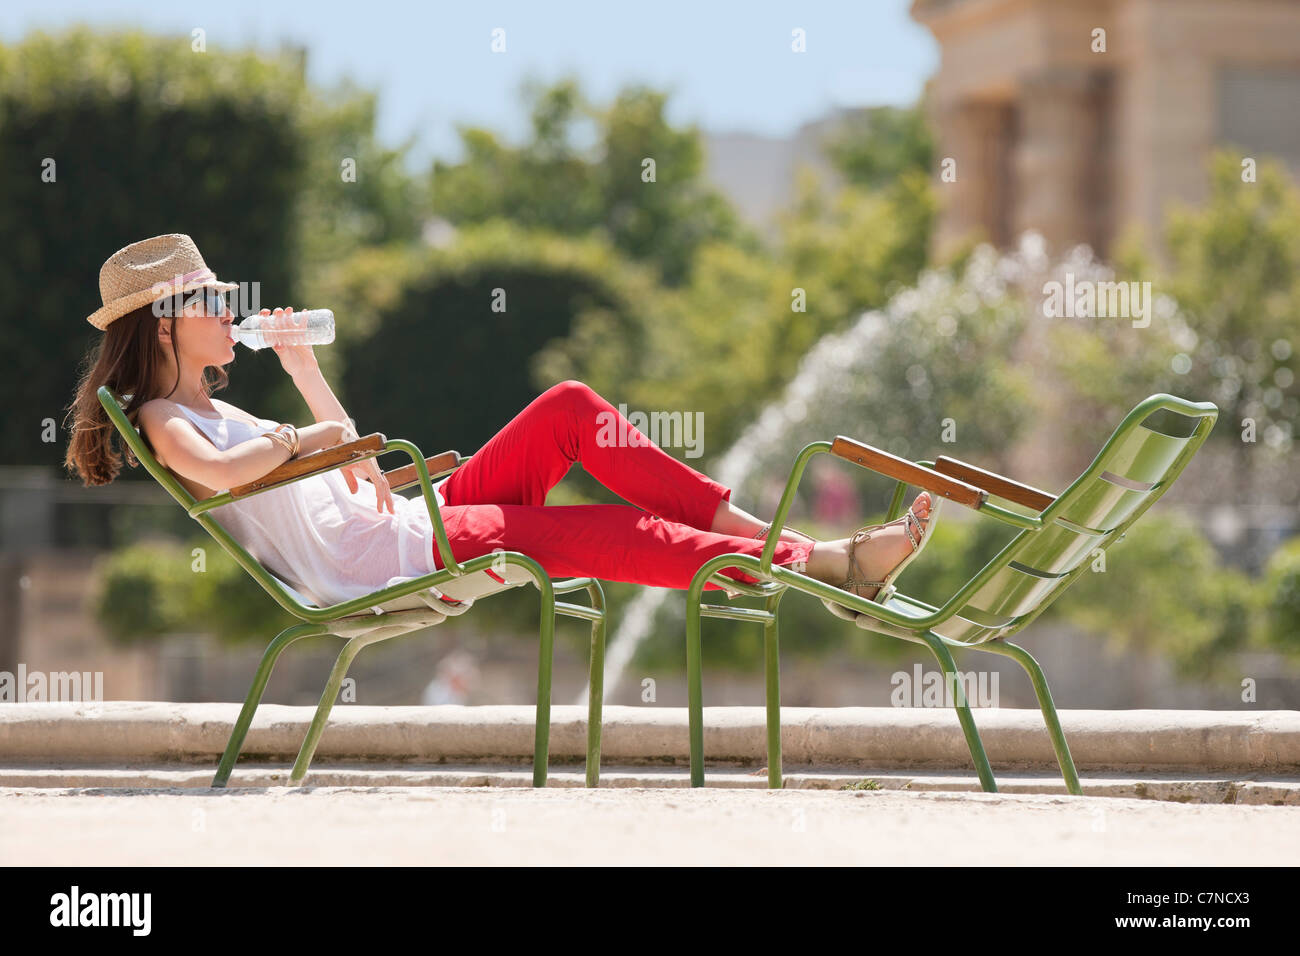 Woman sitting in a chair and drinking water, Bassin octogonal, Jardin des Tuileries, Paris, Ile-de-France, France - Stock Image